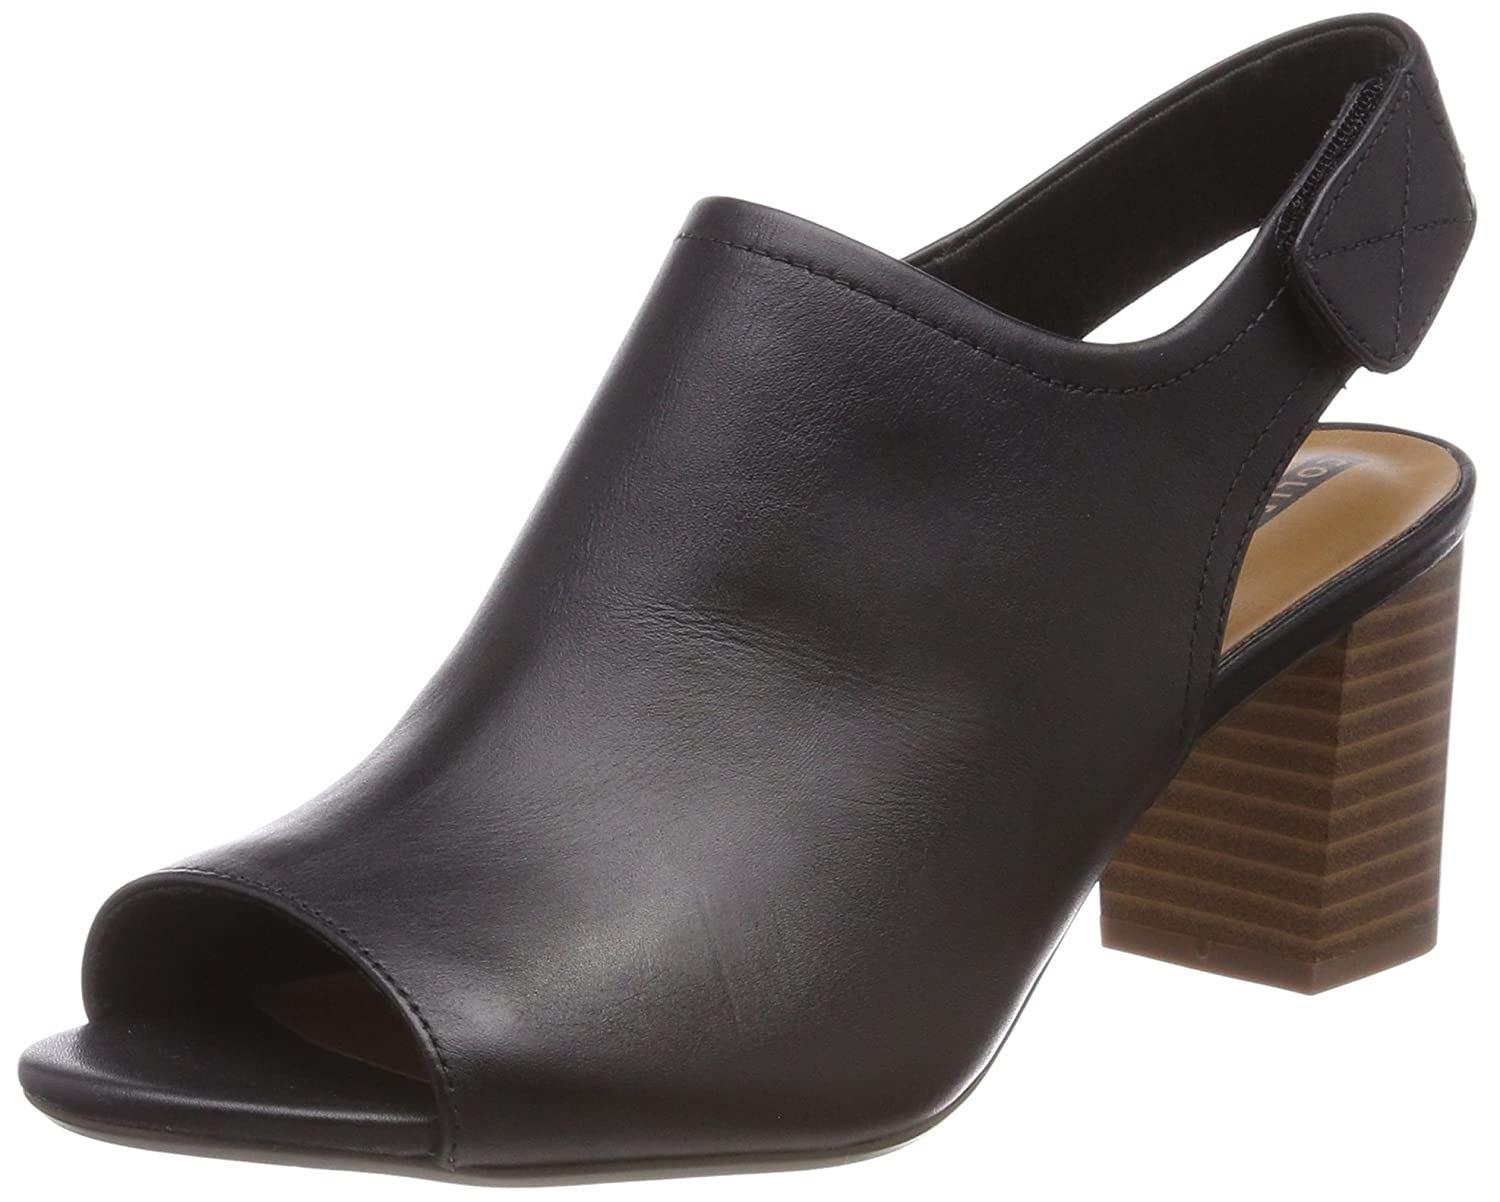 Clarks Deva Jayleen, Sandales Jayleen, Bride arrière Femme (Black B004H7RVXQ Noir (Black Leather) 24fdfe6 - fast-weightloss-diet.space